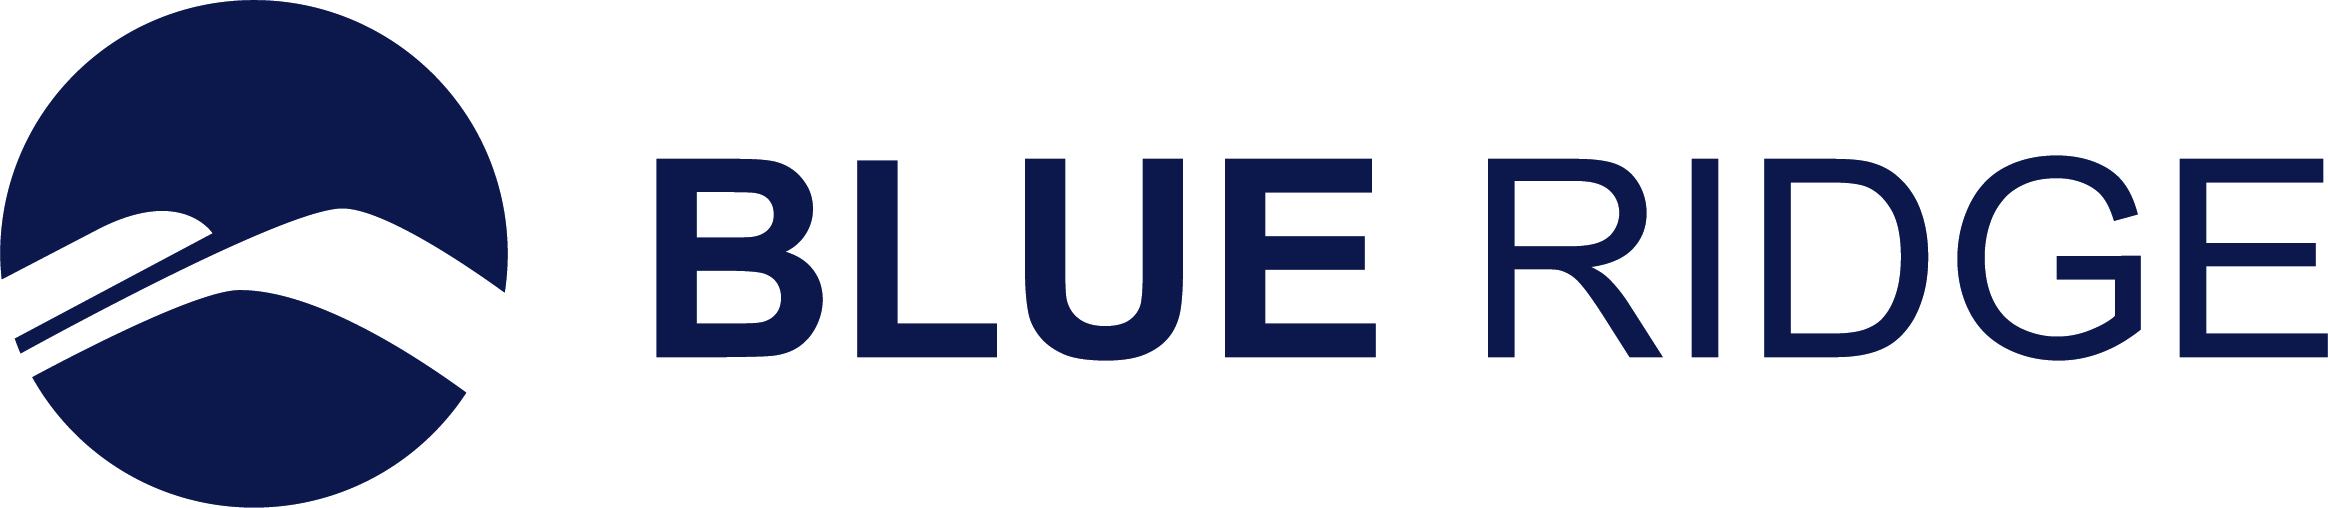 Blue Ridge Announces Partnership with Körber to Tightly Connect Supply Chain Planning with Execution 1